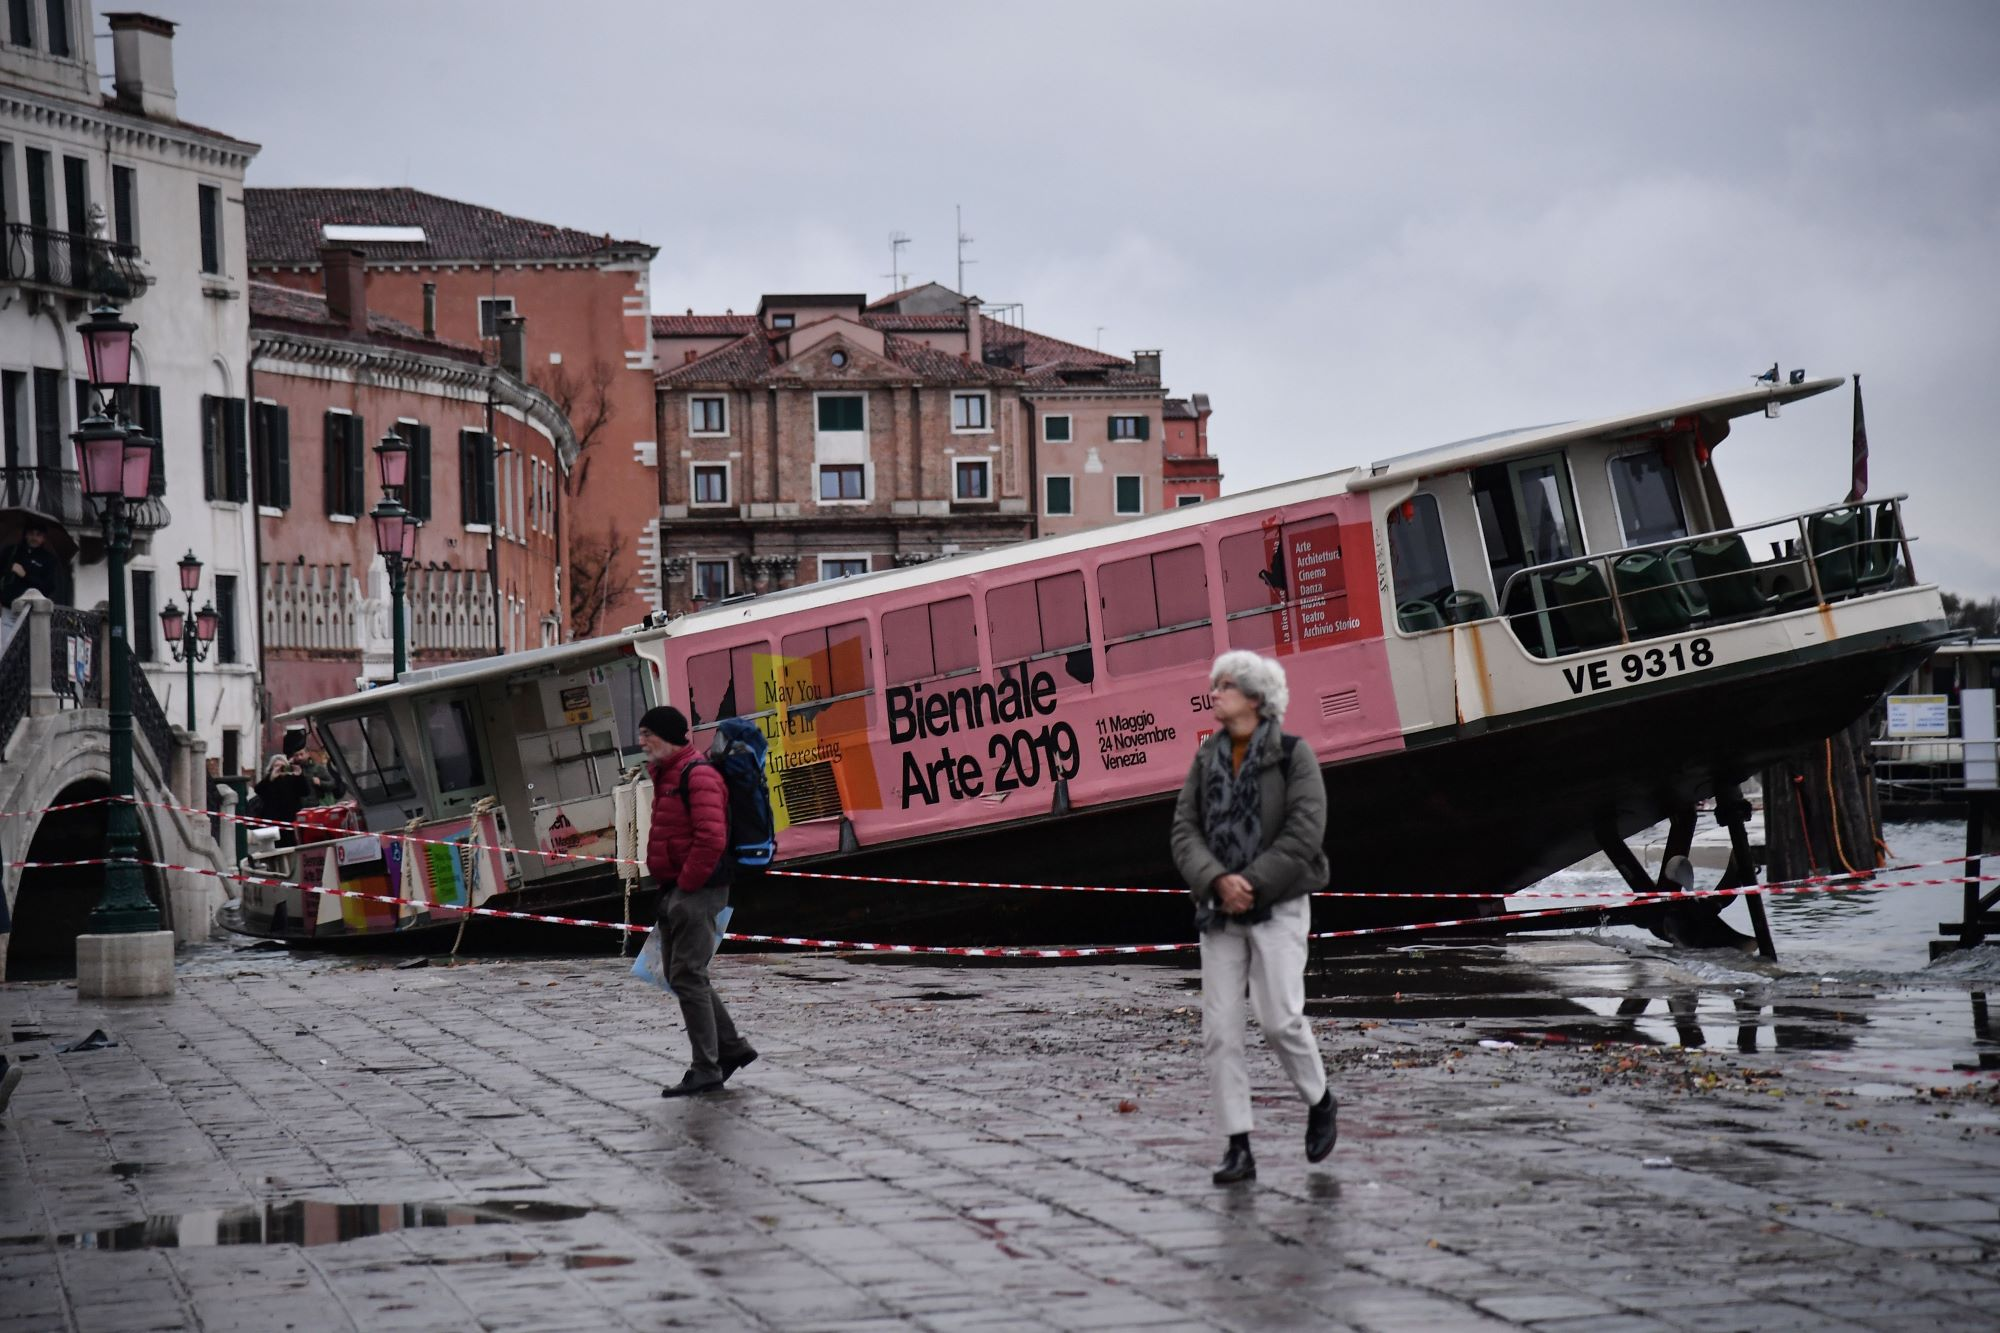 The Venice Biennale Shuts Down As The City Is Hit By Its Worst Floods In Half A Century Artnet News